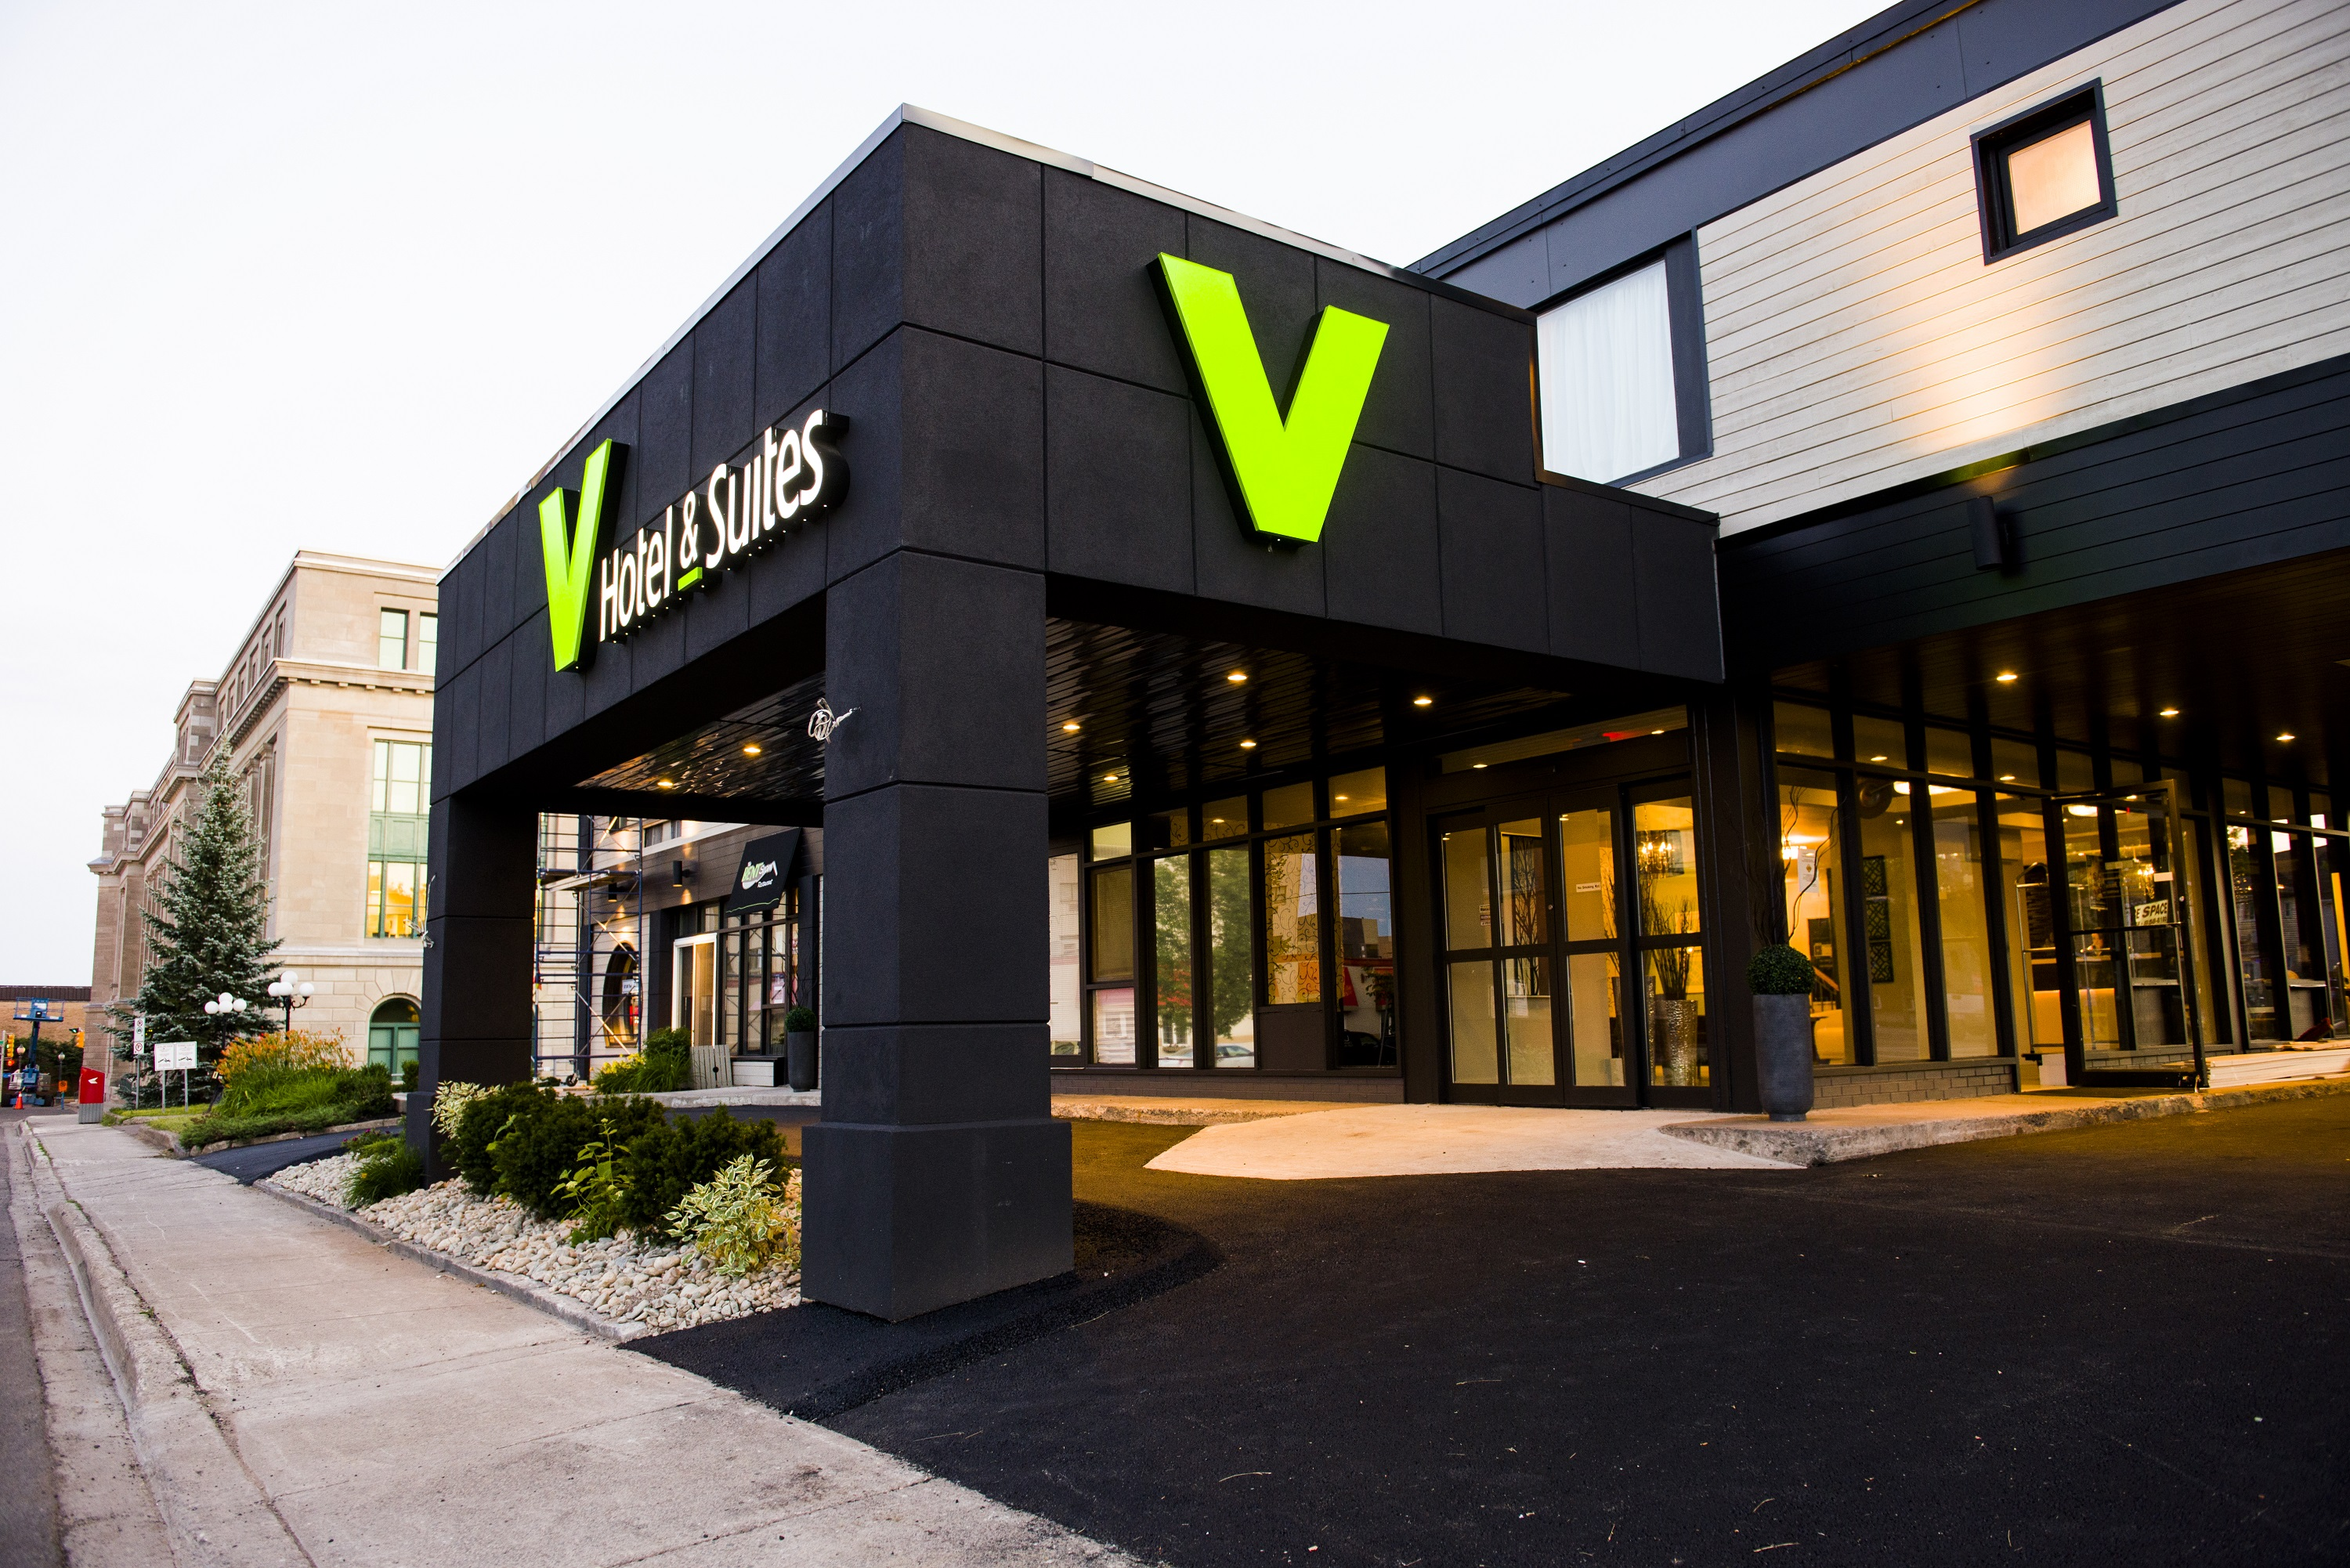 V Hotel and Suites